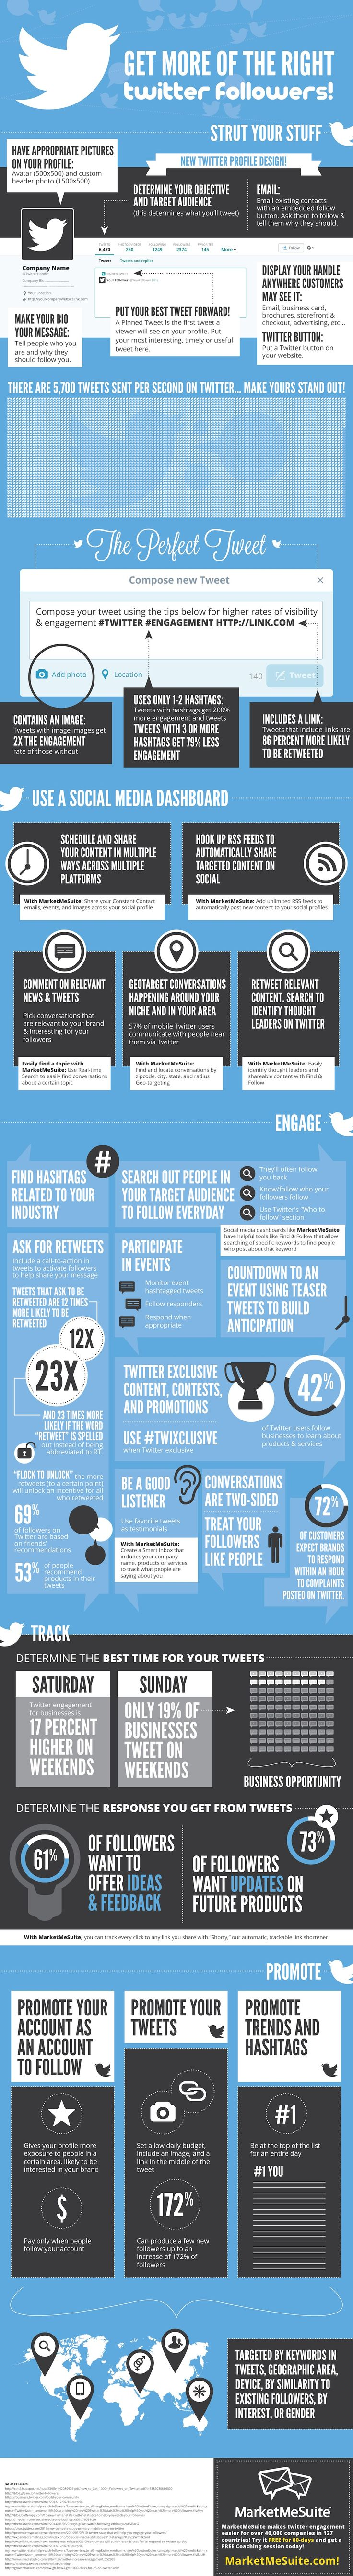 Get more of the right #Twitter followers! - #SocialMedia #Infographic